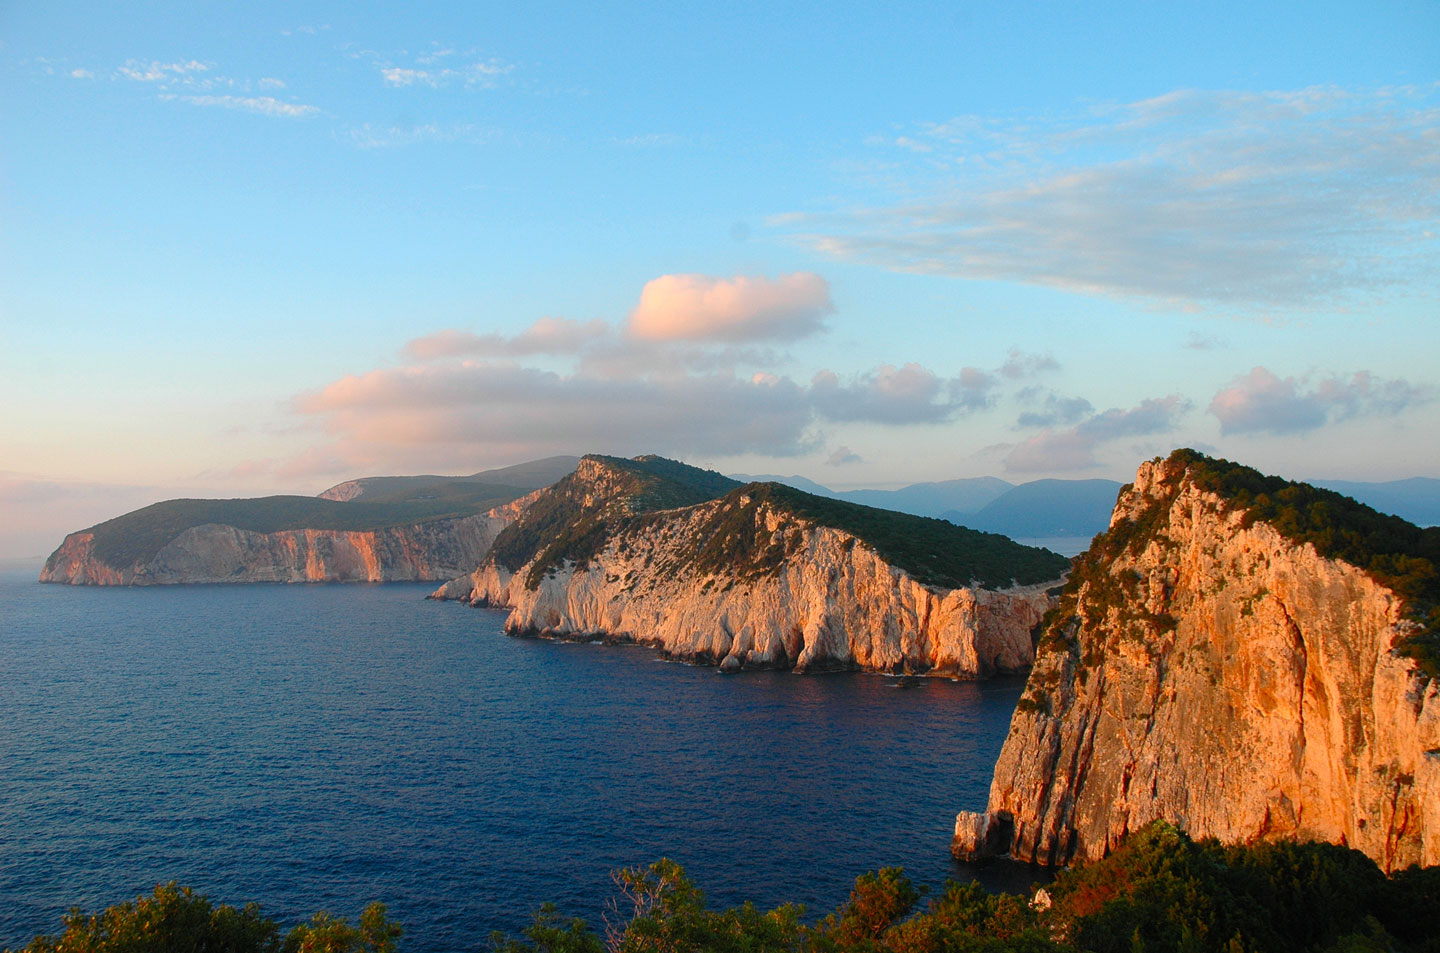 Cape Lefkatas and the ancient lyric poetess Sappho